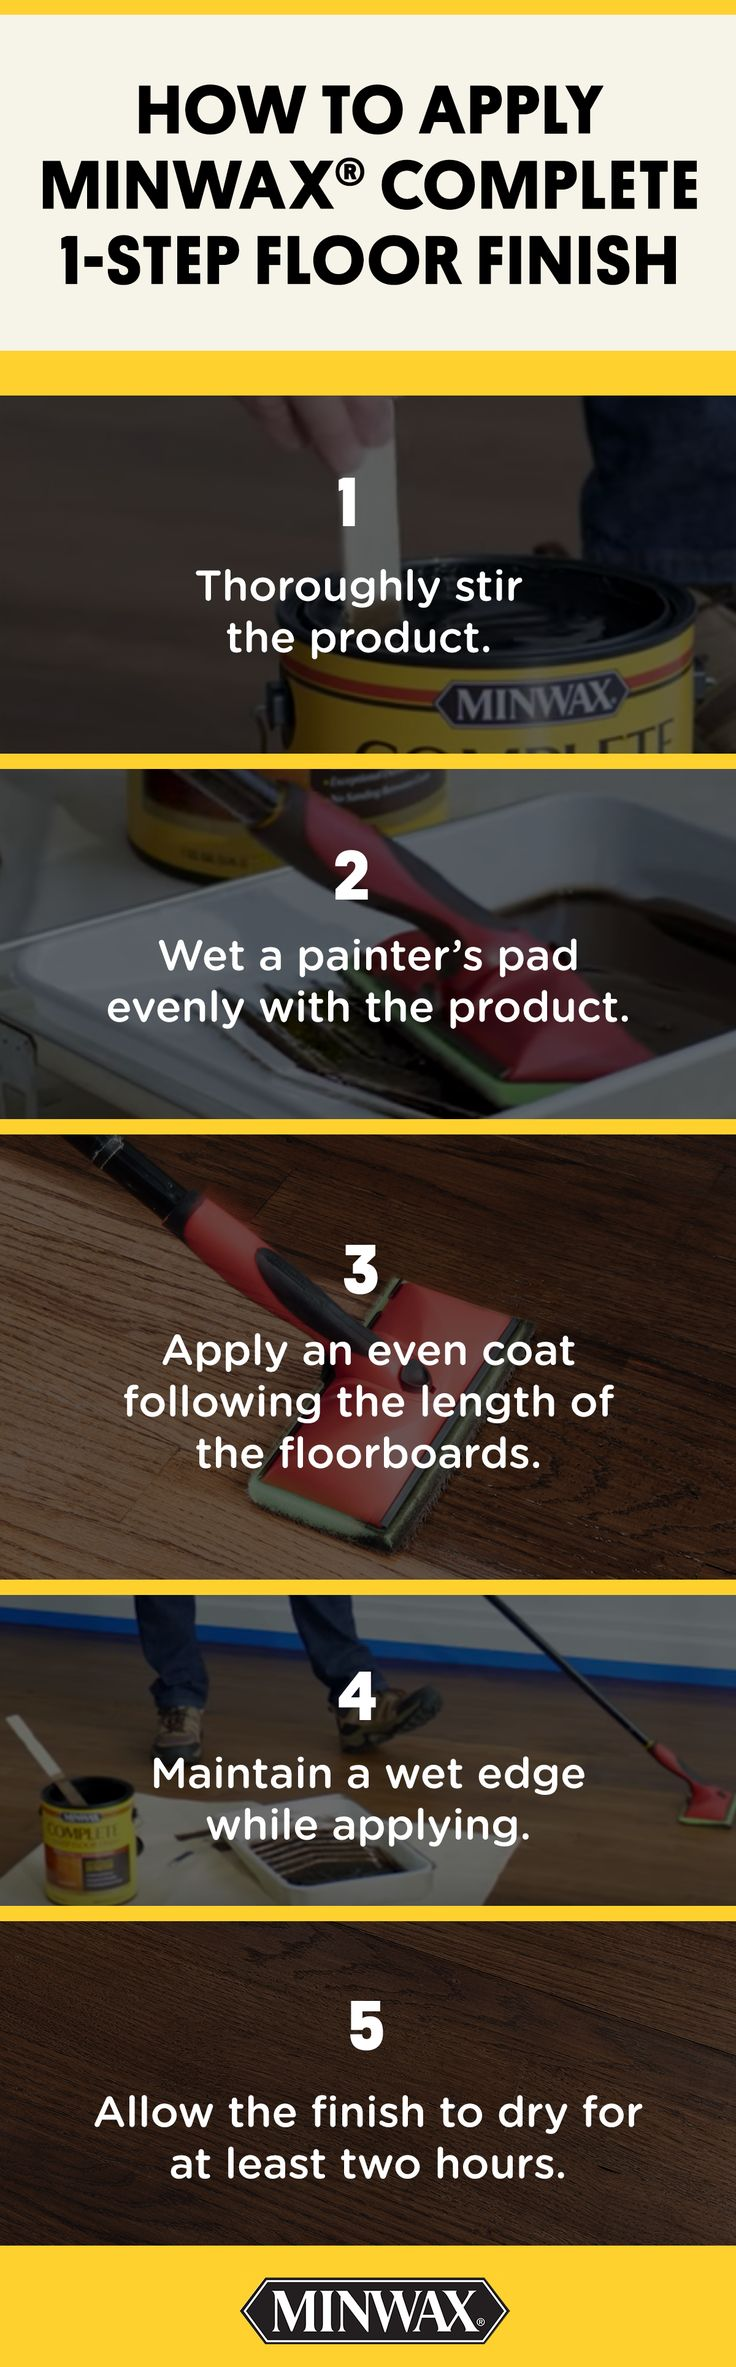 Wood by sanding the floors minwax floor finishes minwax floor finishes - Find This Pin And More On Complete 1 Step Floor Finish It S Easy To Change The Color Of Your Hardwood Floors With Minwax